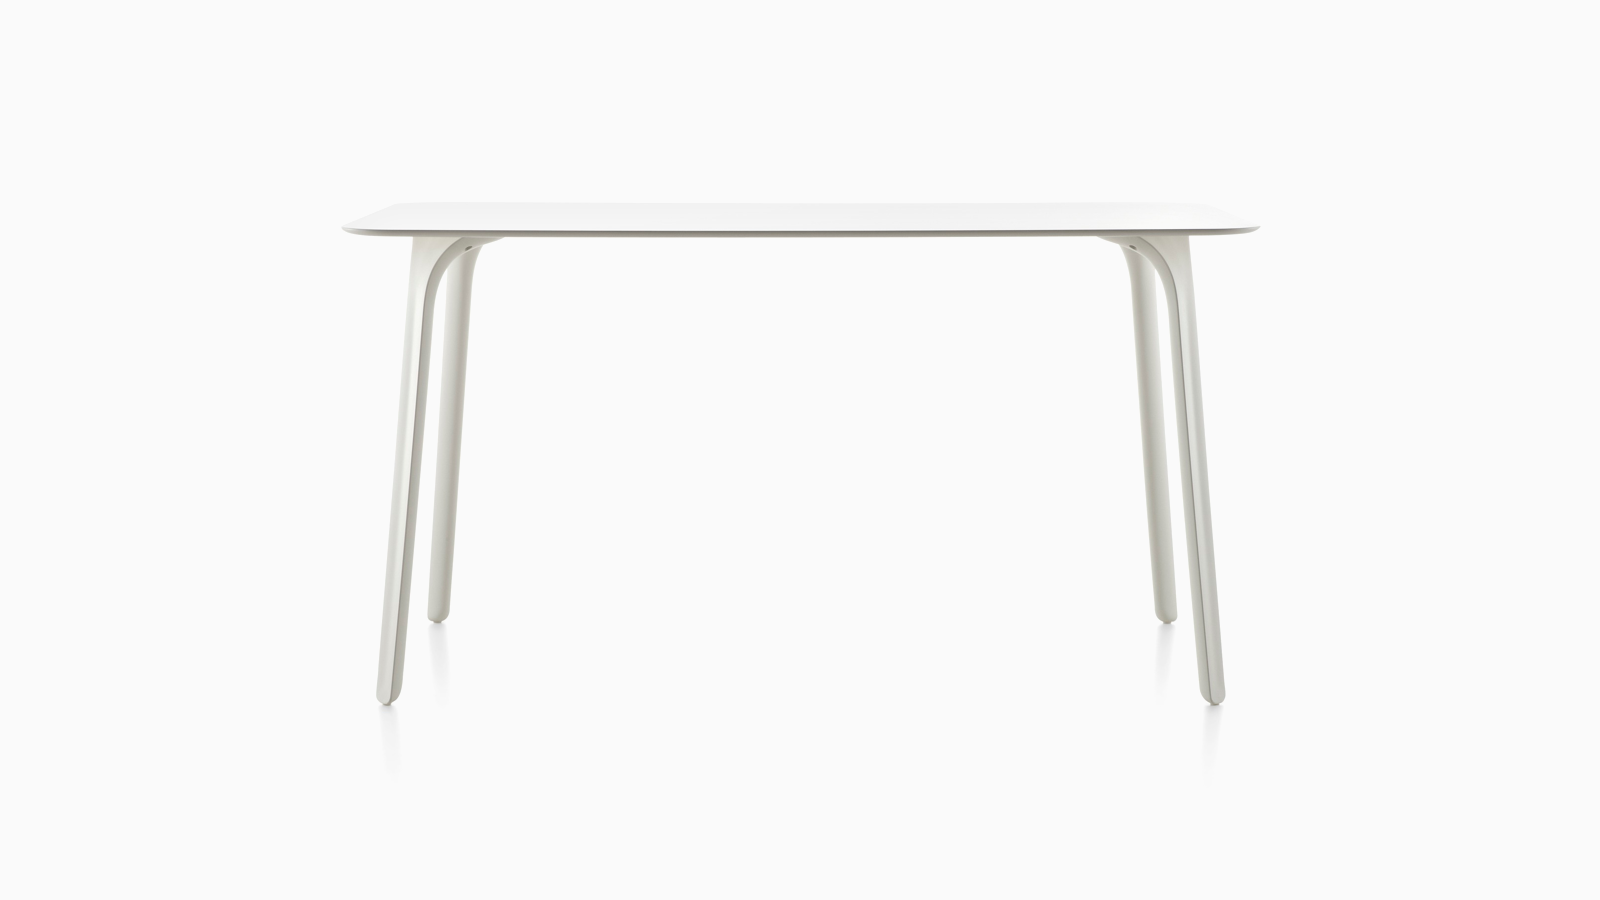 Magis Table First Outdoor Sturdy Lightweight And Sophisticated The Magis Table First Outdoor By Stefano Giovannoni Is A Versatile Magis Table Rectangular